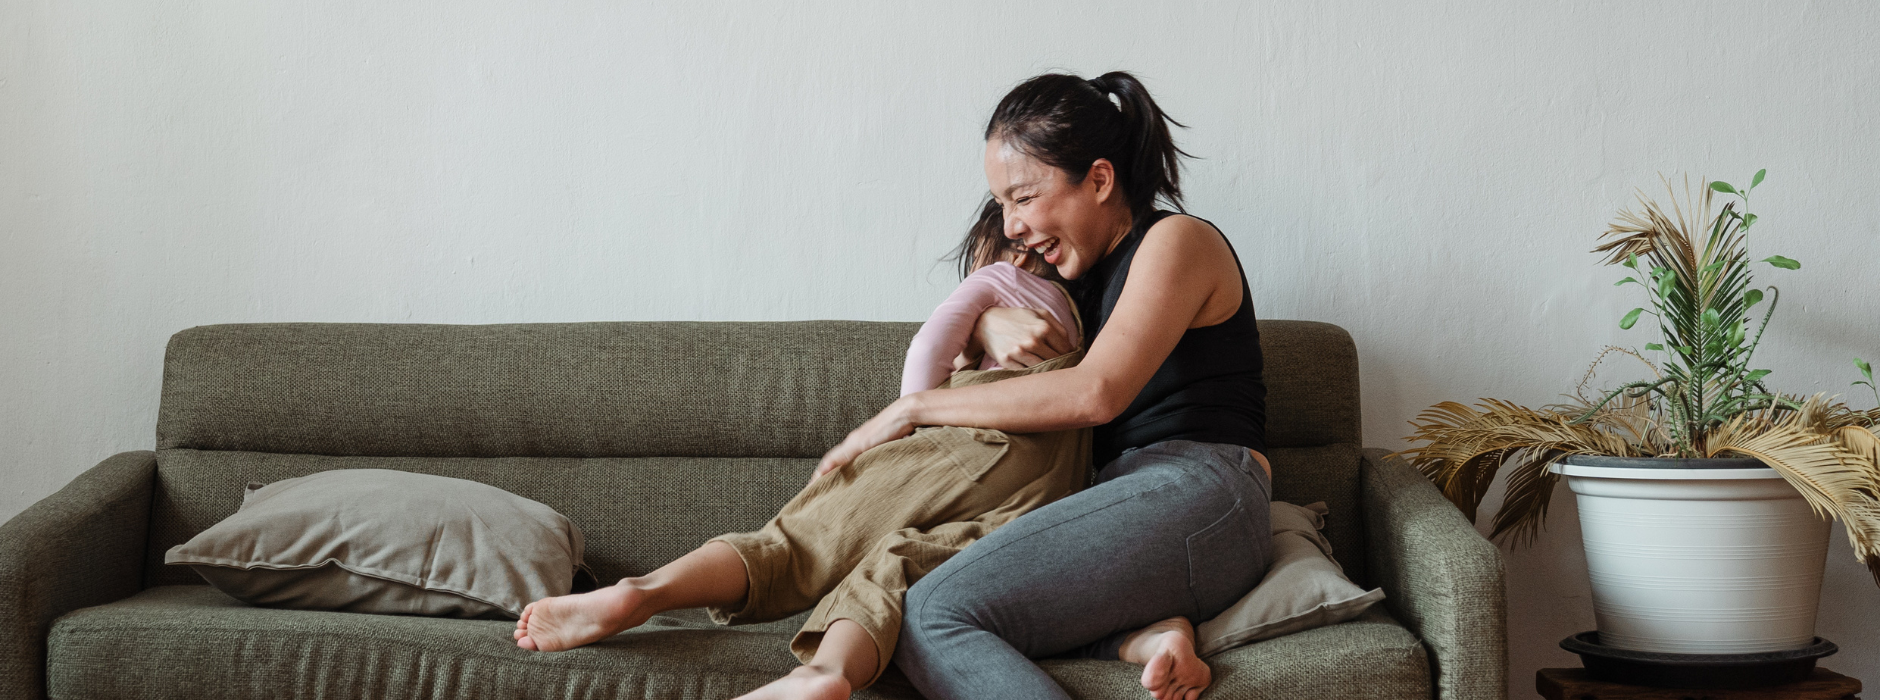 Give Mom All The Feels - mom and daughter hugging